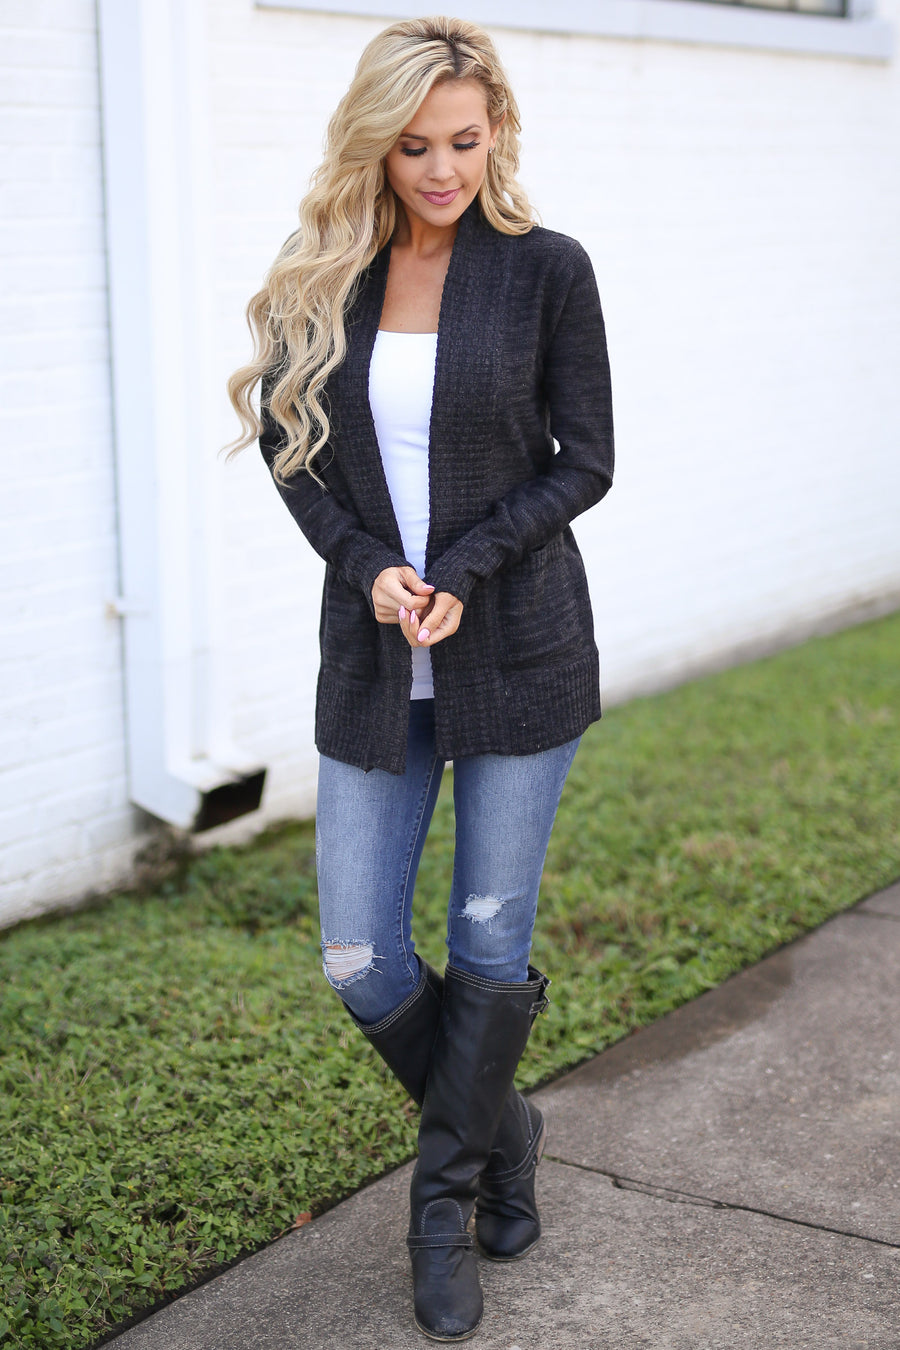 At Your Leisure Cardigan - Heathered Charcoal knit cardigan, side, cute fall style, Closet Candy Boutique 1